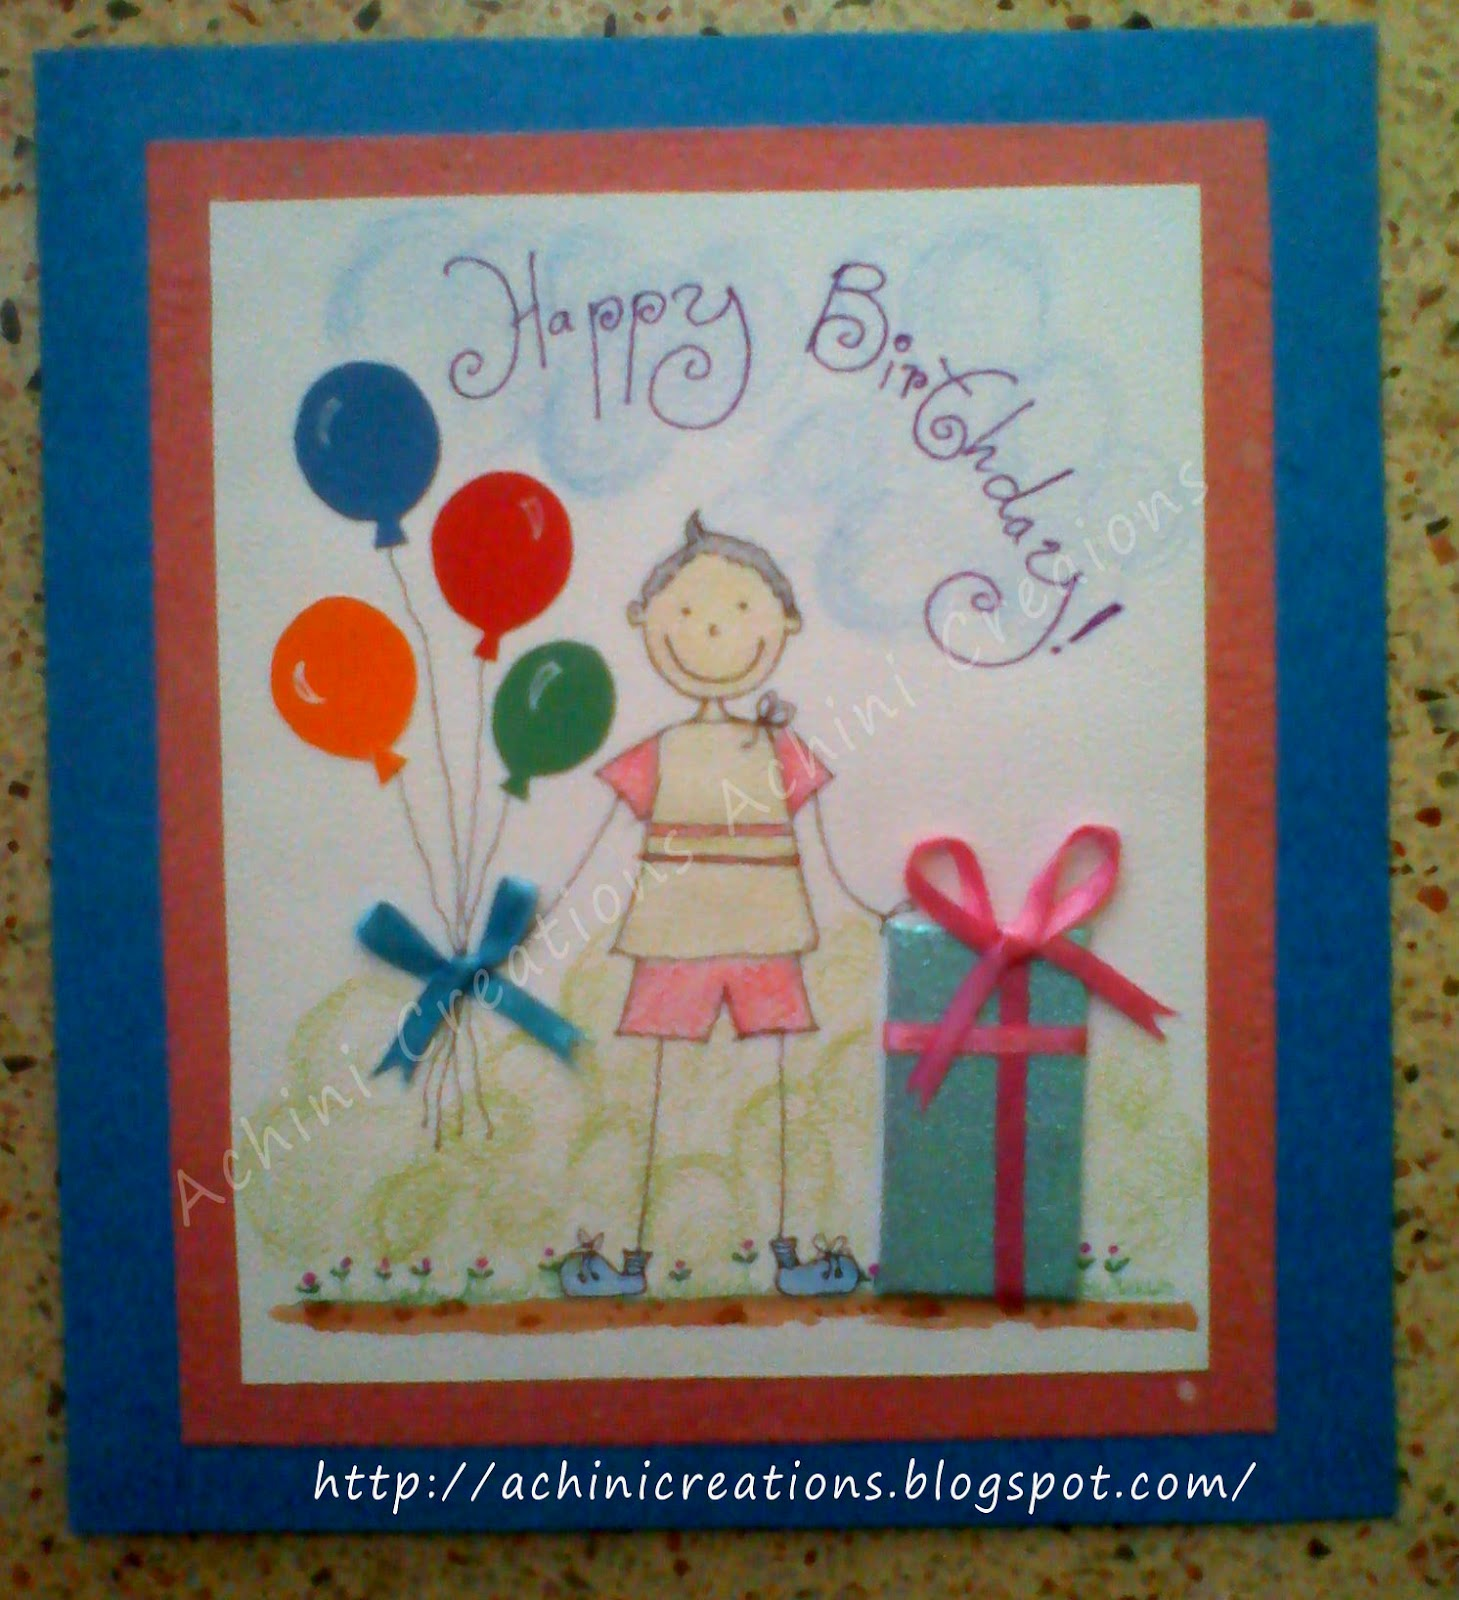 Achini Creations Handmade Greeting Cards Birthday Card For A Kid